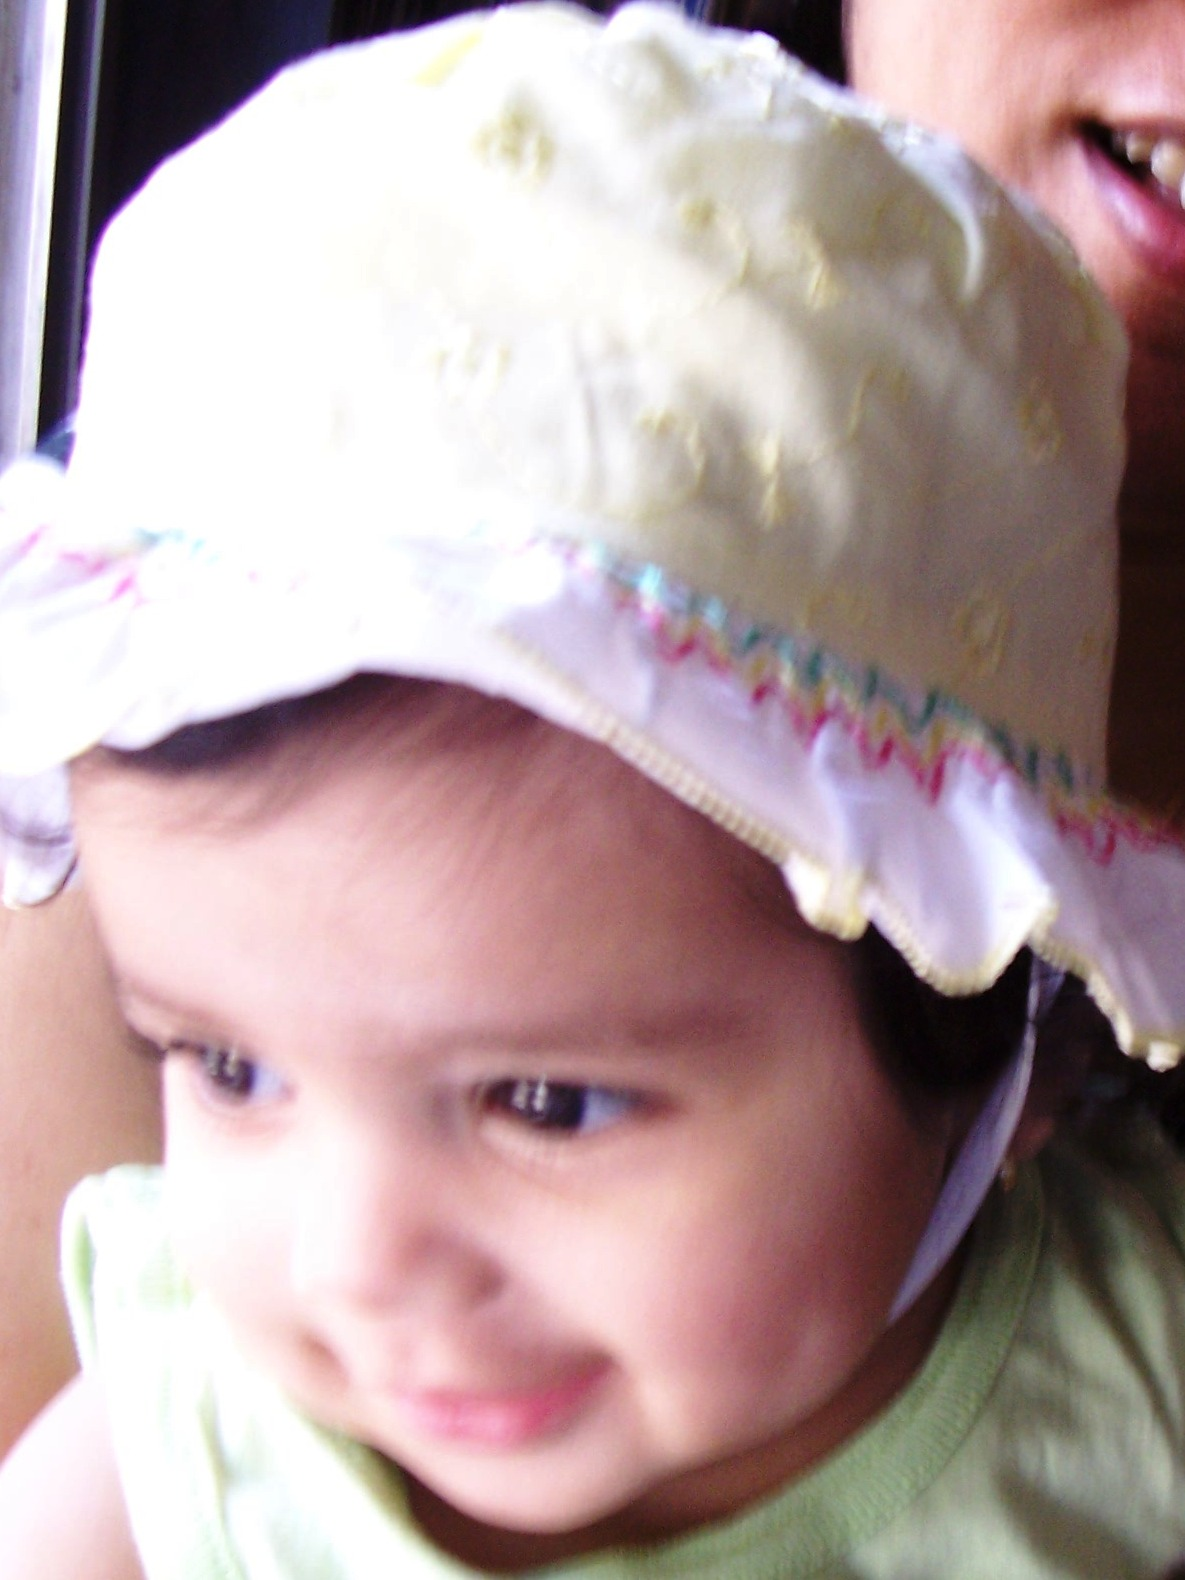 dimple.jpg - When you're a baby, you get to wear a hat even when you're not in the sun, what fun!